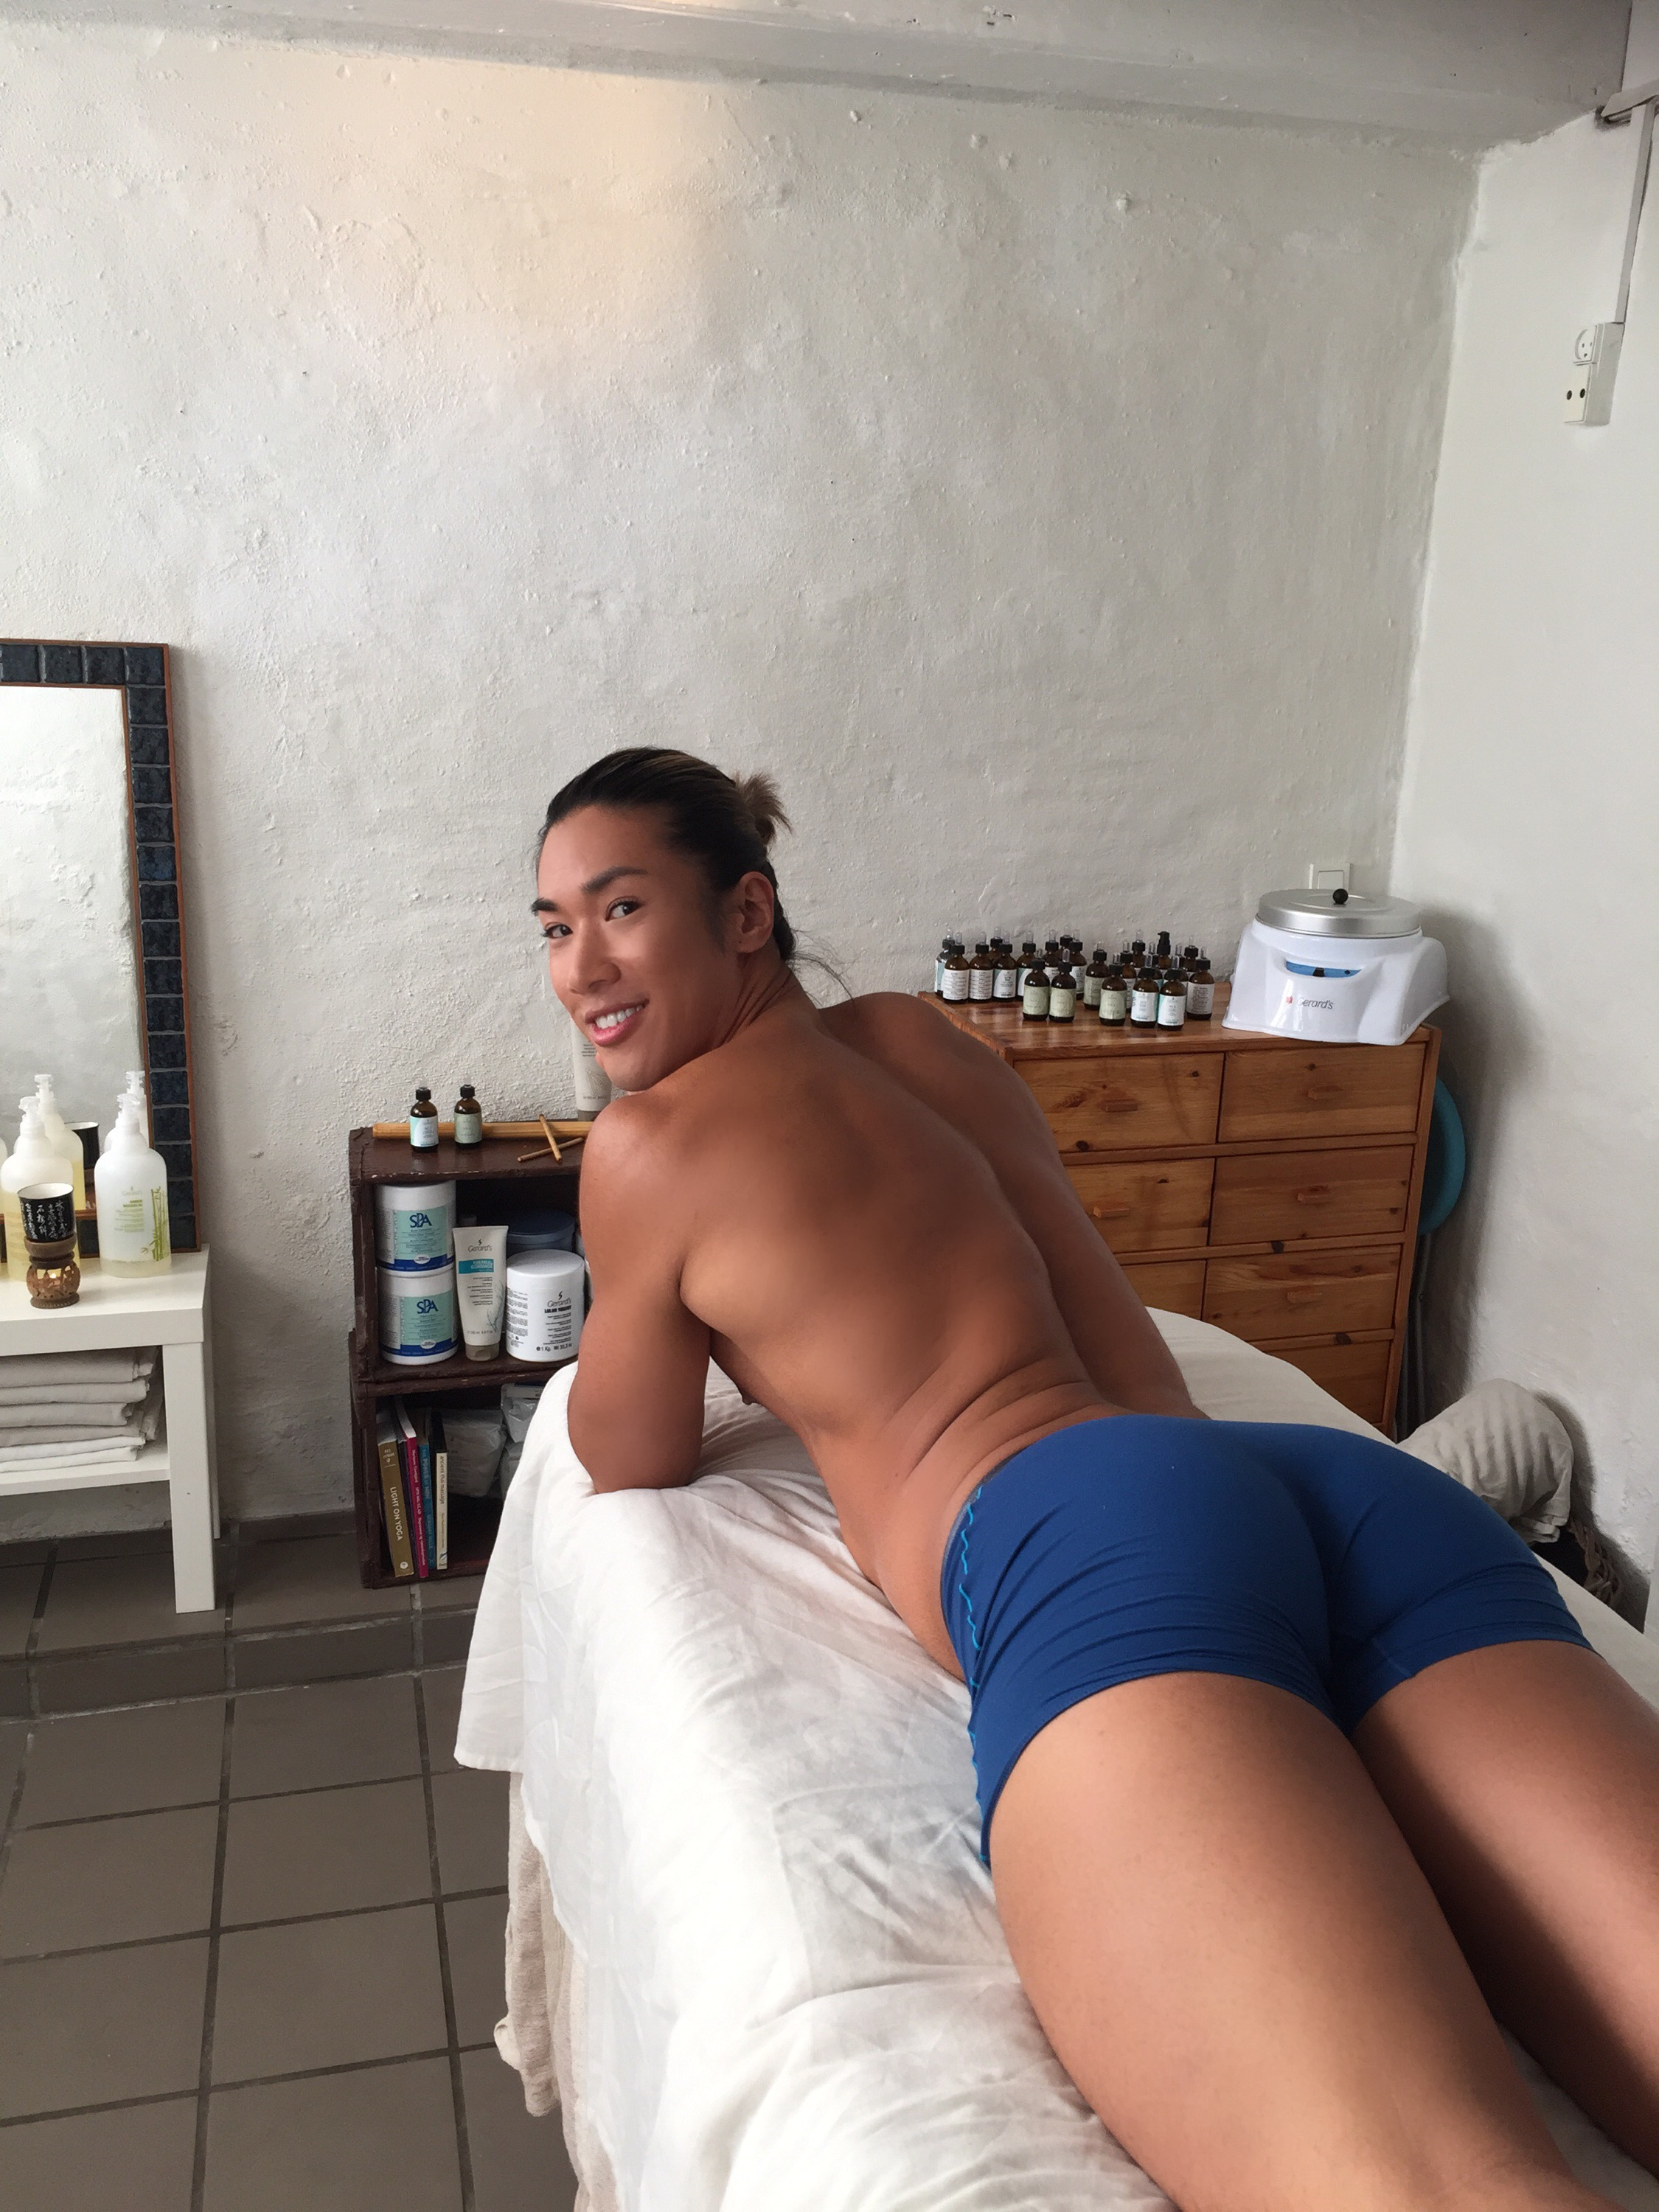 asian escort copenhagen knulla min kåta fitta